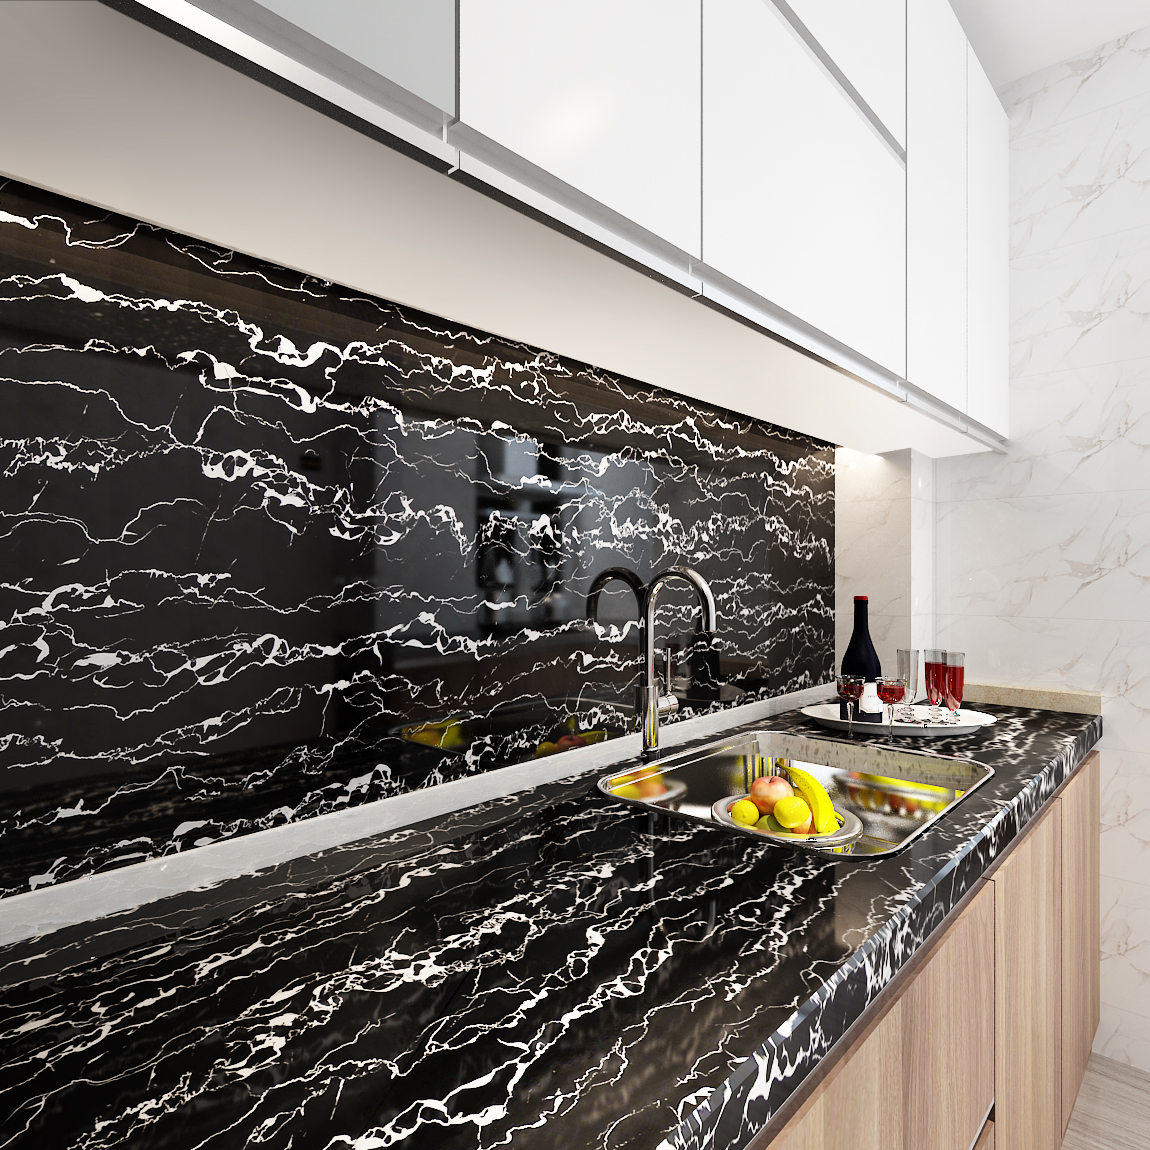 Marble Waterproof Contact Paper Vinyl Self Adhesive Wallpaper Decorative Film Kitchen Cabinet Countertop Furniture Table Sticker Wallpapers Aliexpress